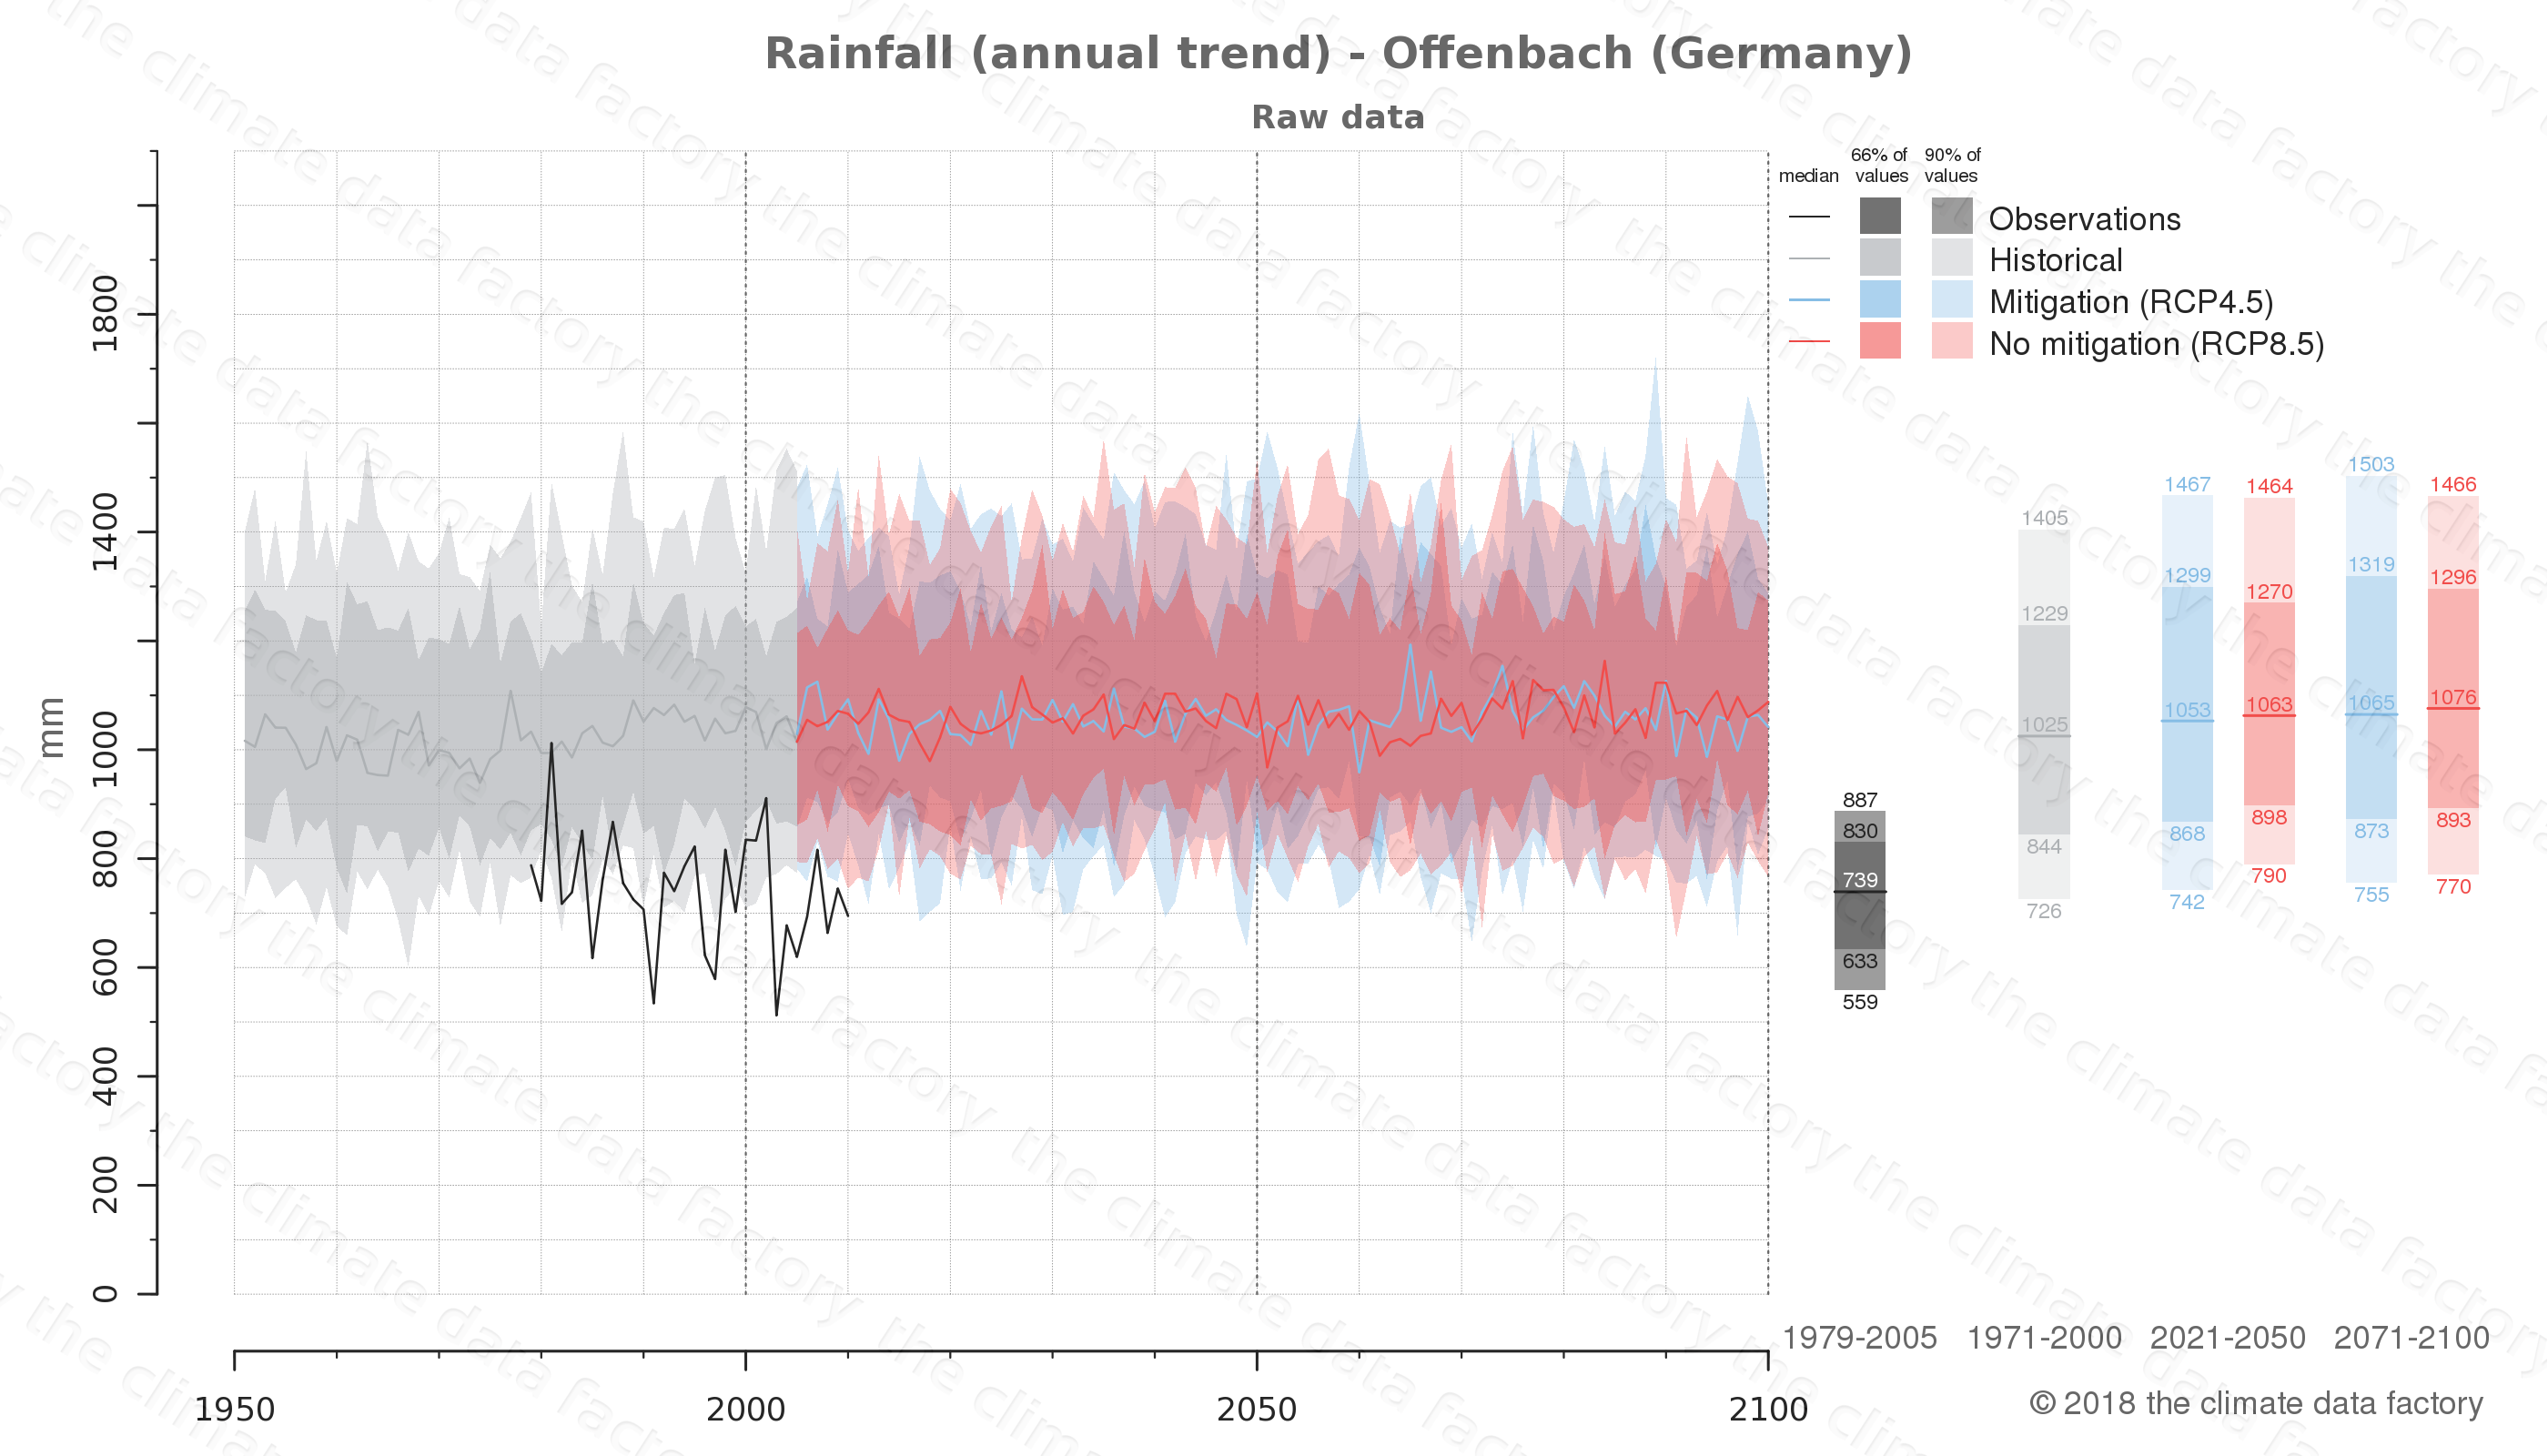 climate change data policy adaptation climate graph city data rainfall offenbach germany